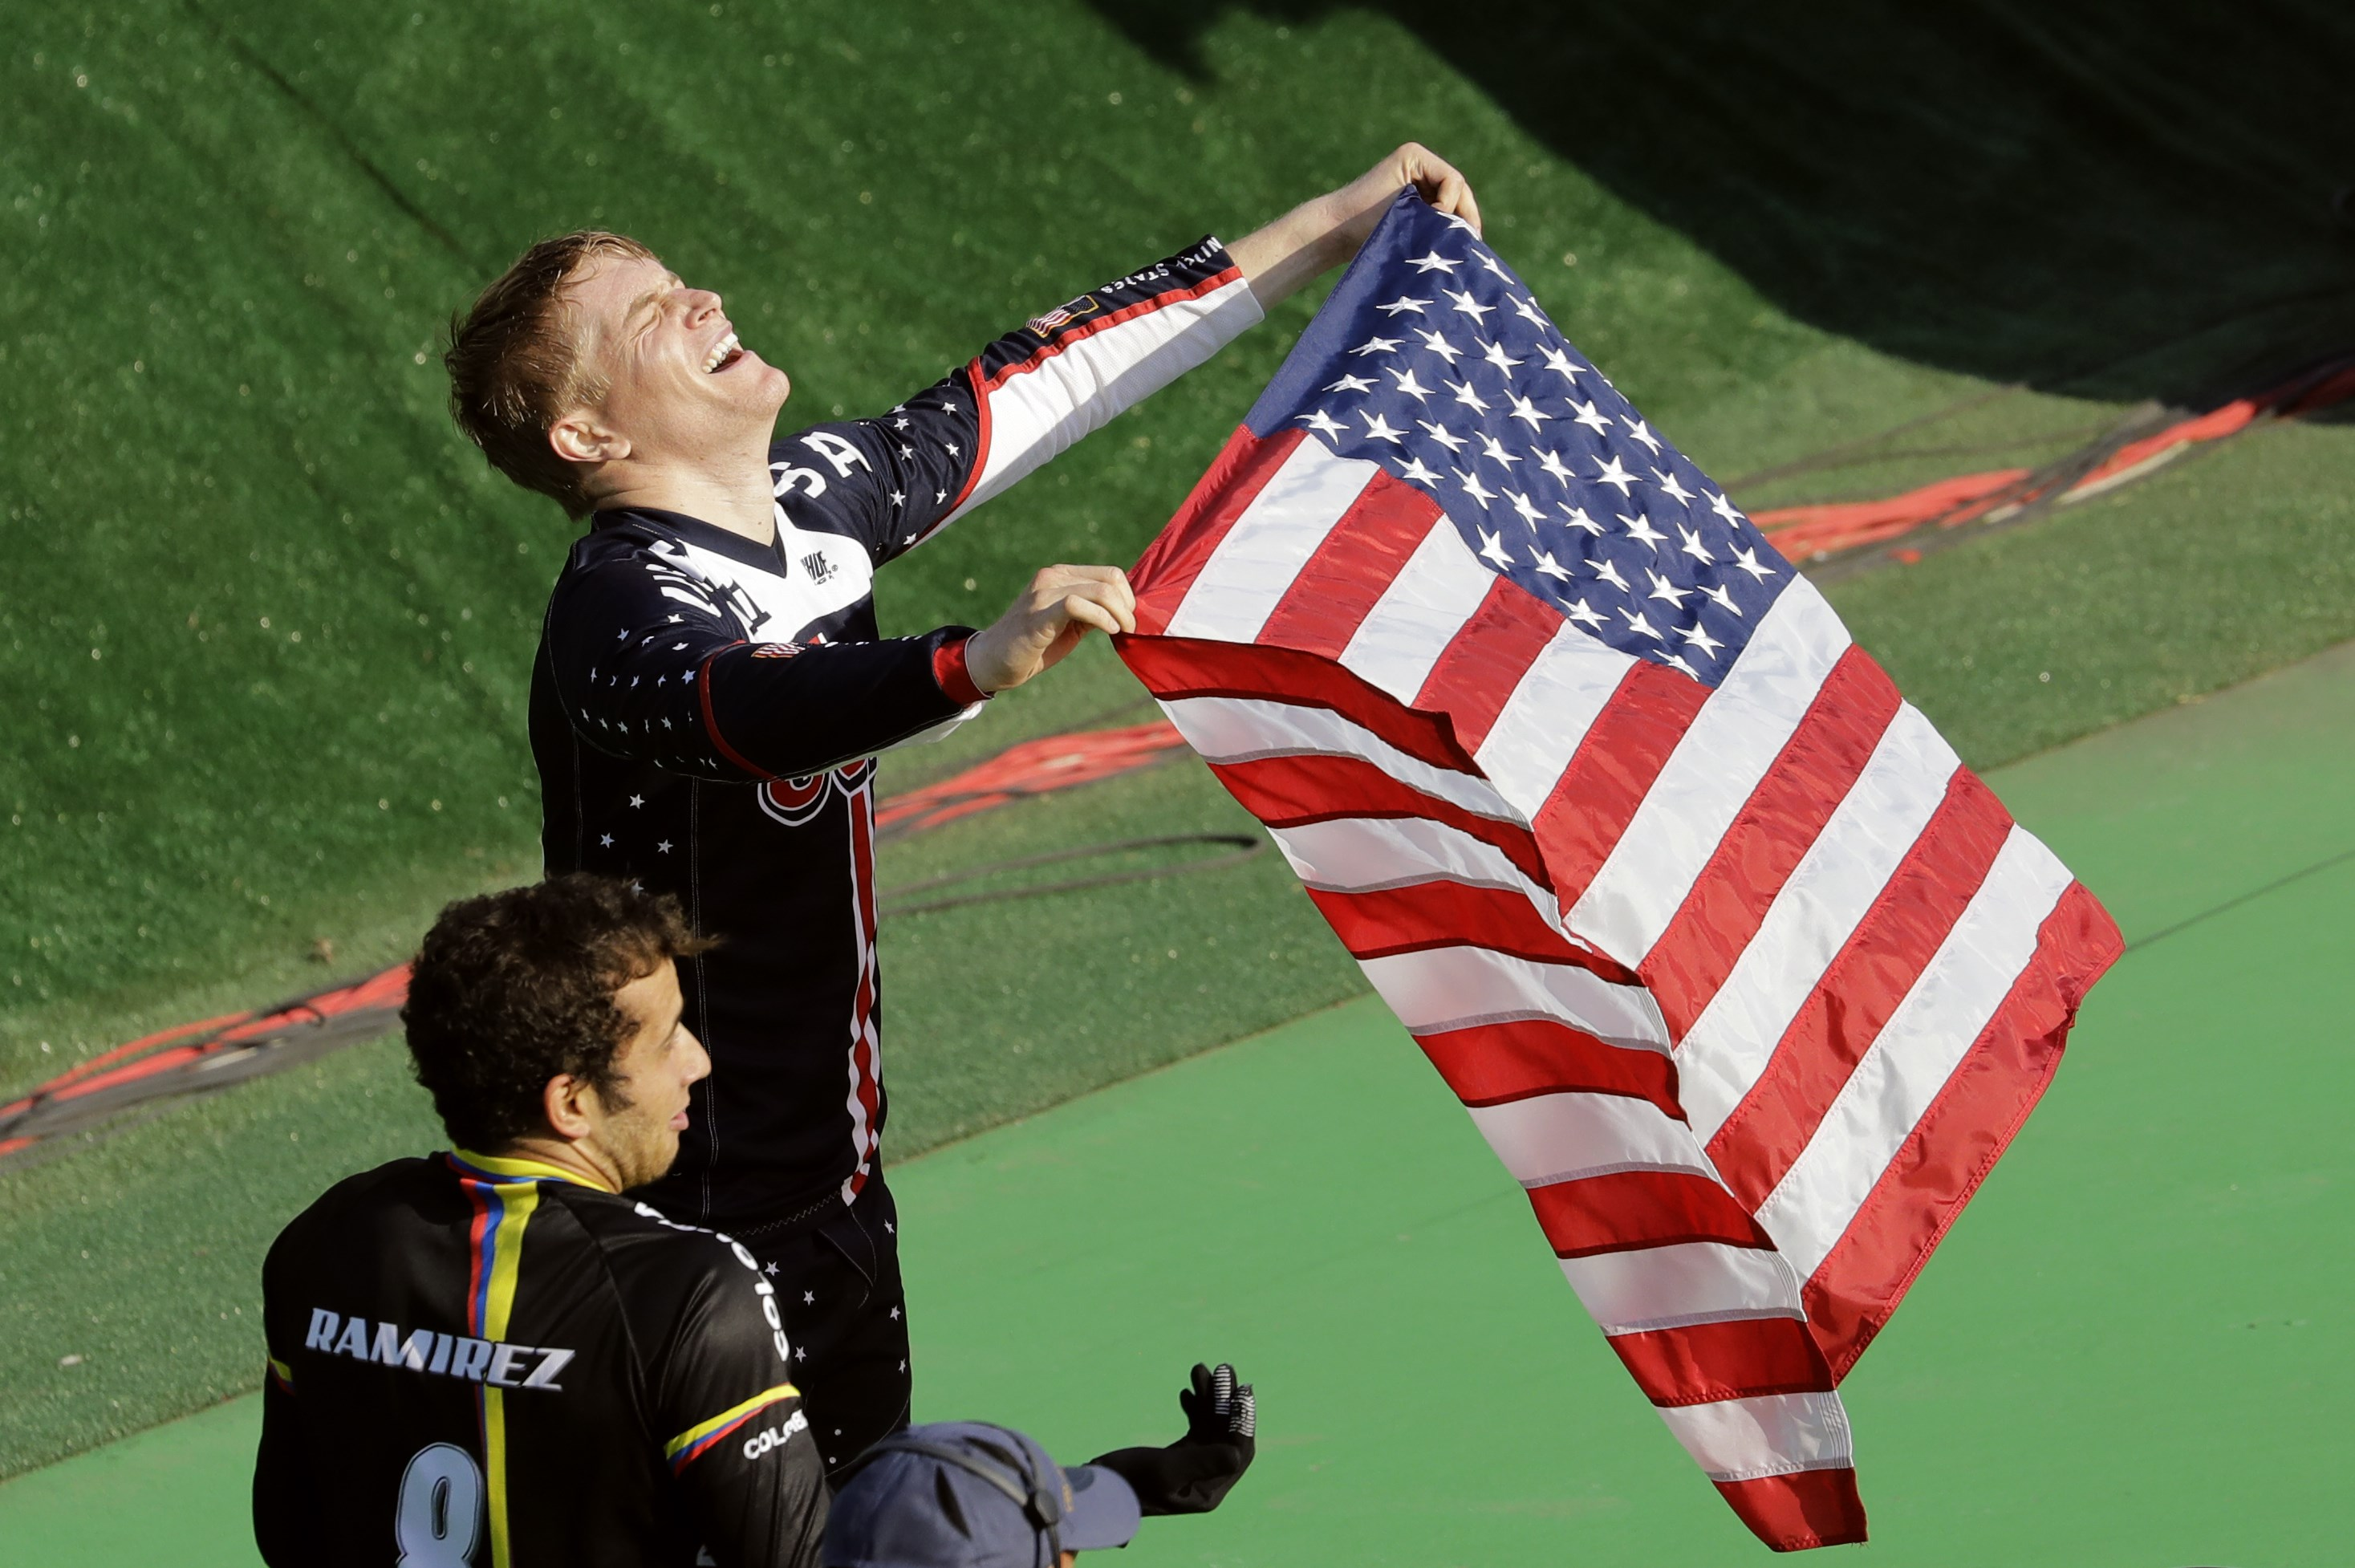 Connor Fields of the United States, top, celebrates after winning gold in the men's BMX cycling final next to third placed Carlos Ramirez Yepes of Colombia, bottom, during the 2016 Summer Olympics in Rio de Janeiro, Brazil, Friday, Aug. 19, 2016. (AP Phot